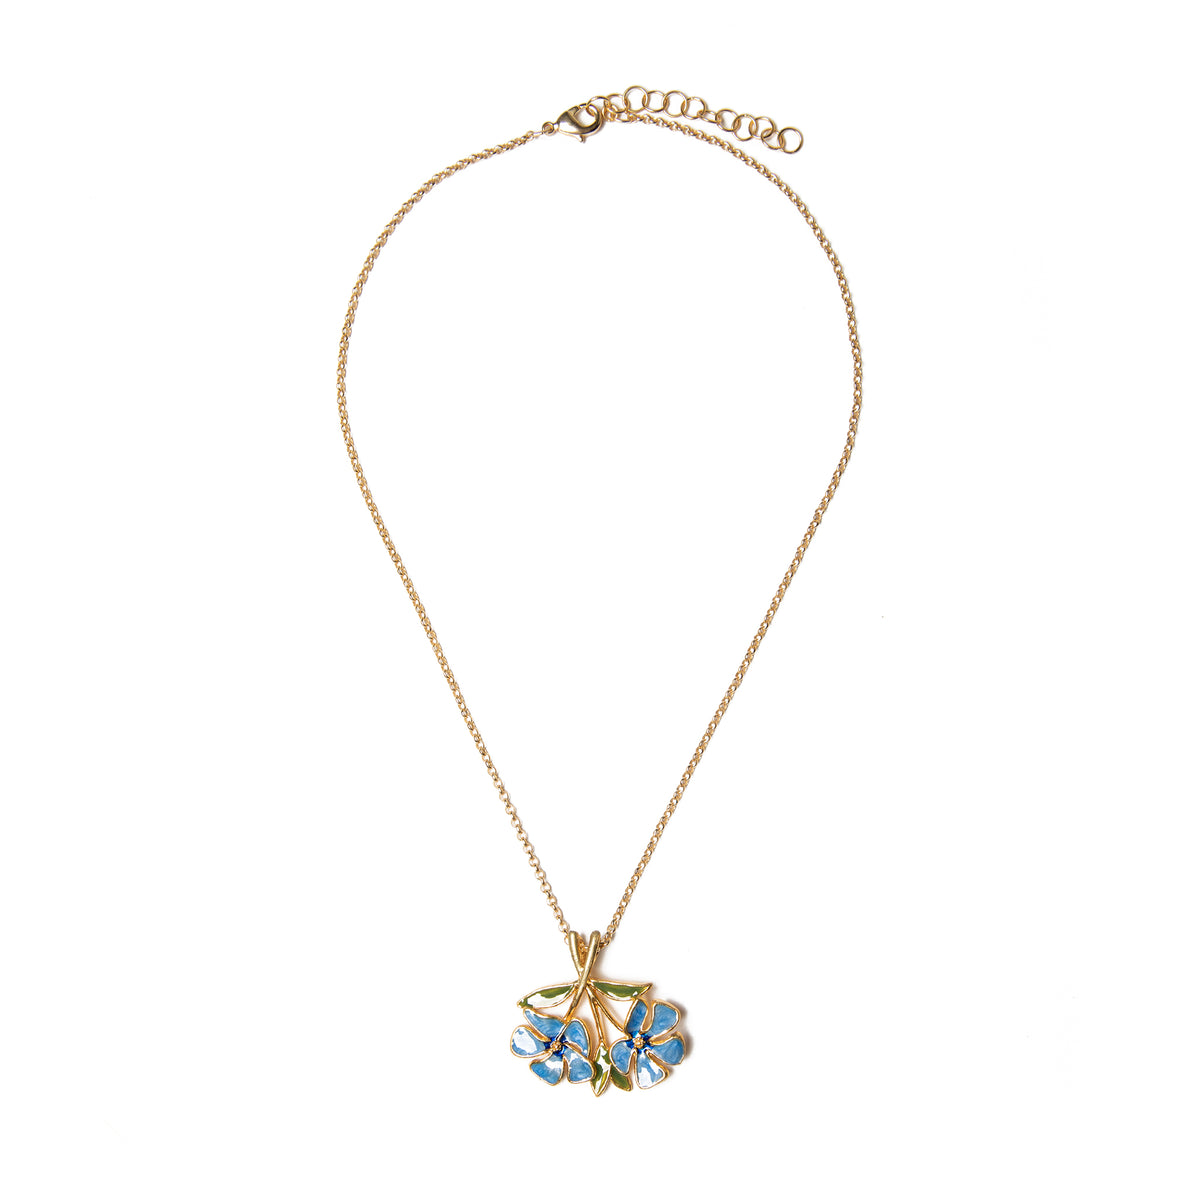 Manet Periwinkle Pendant | Getty Store